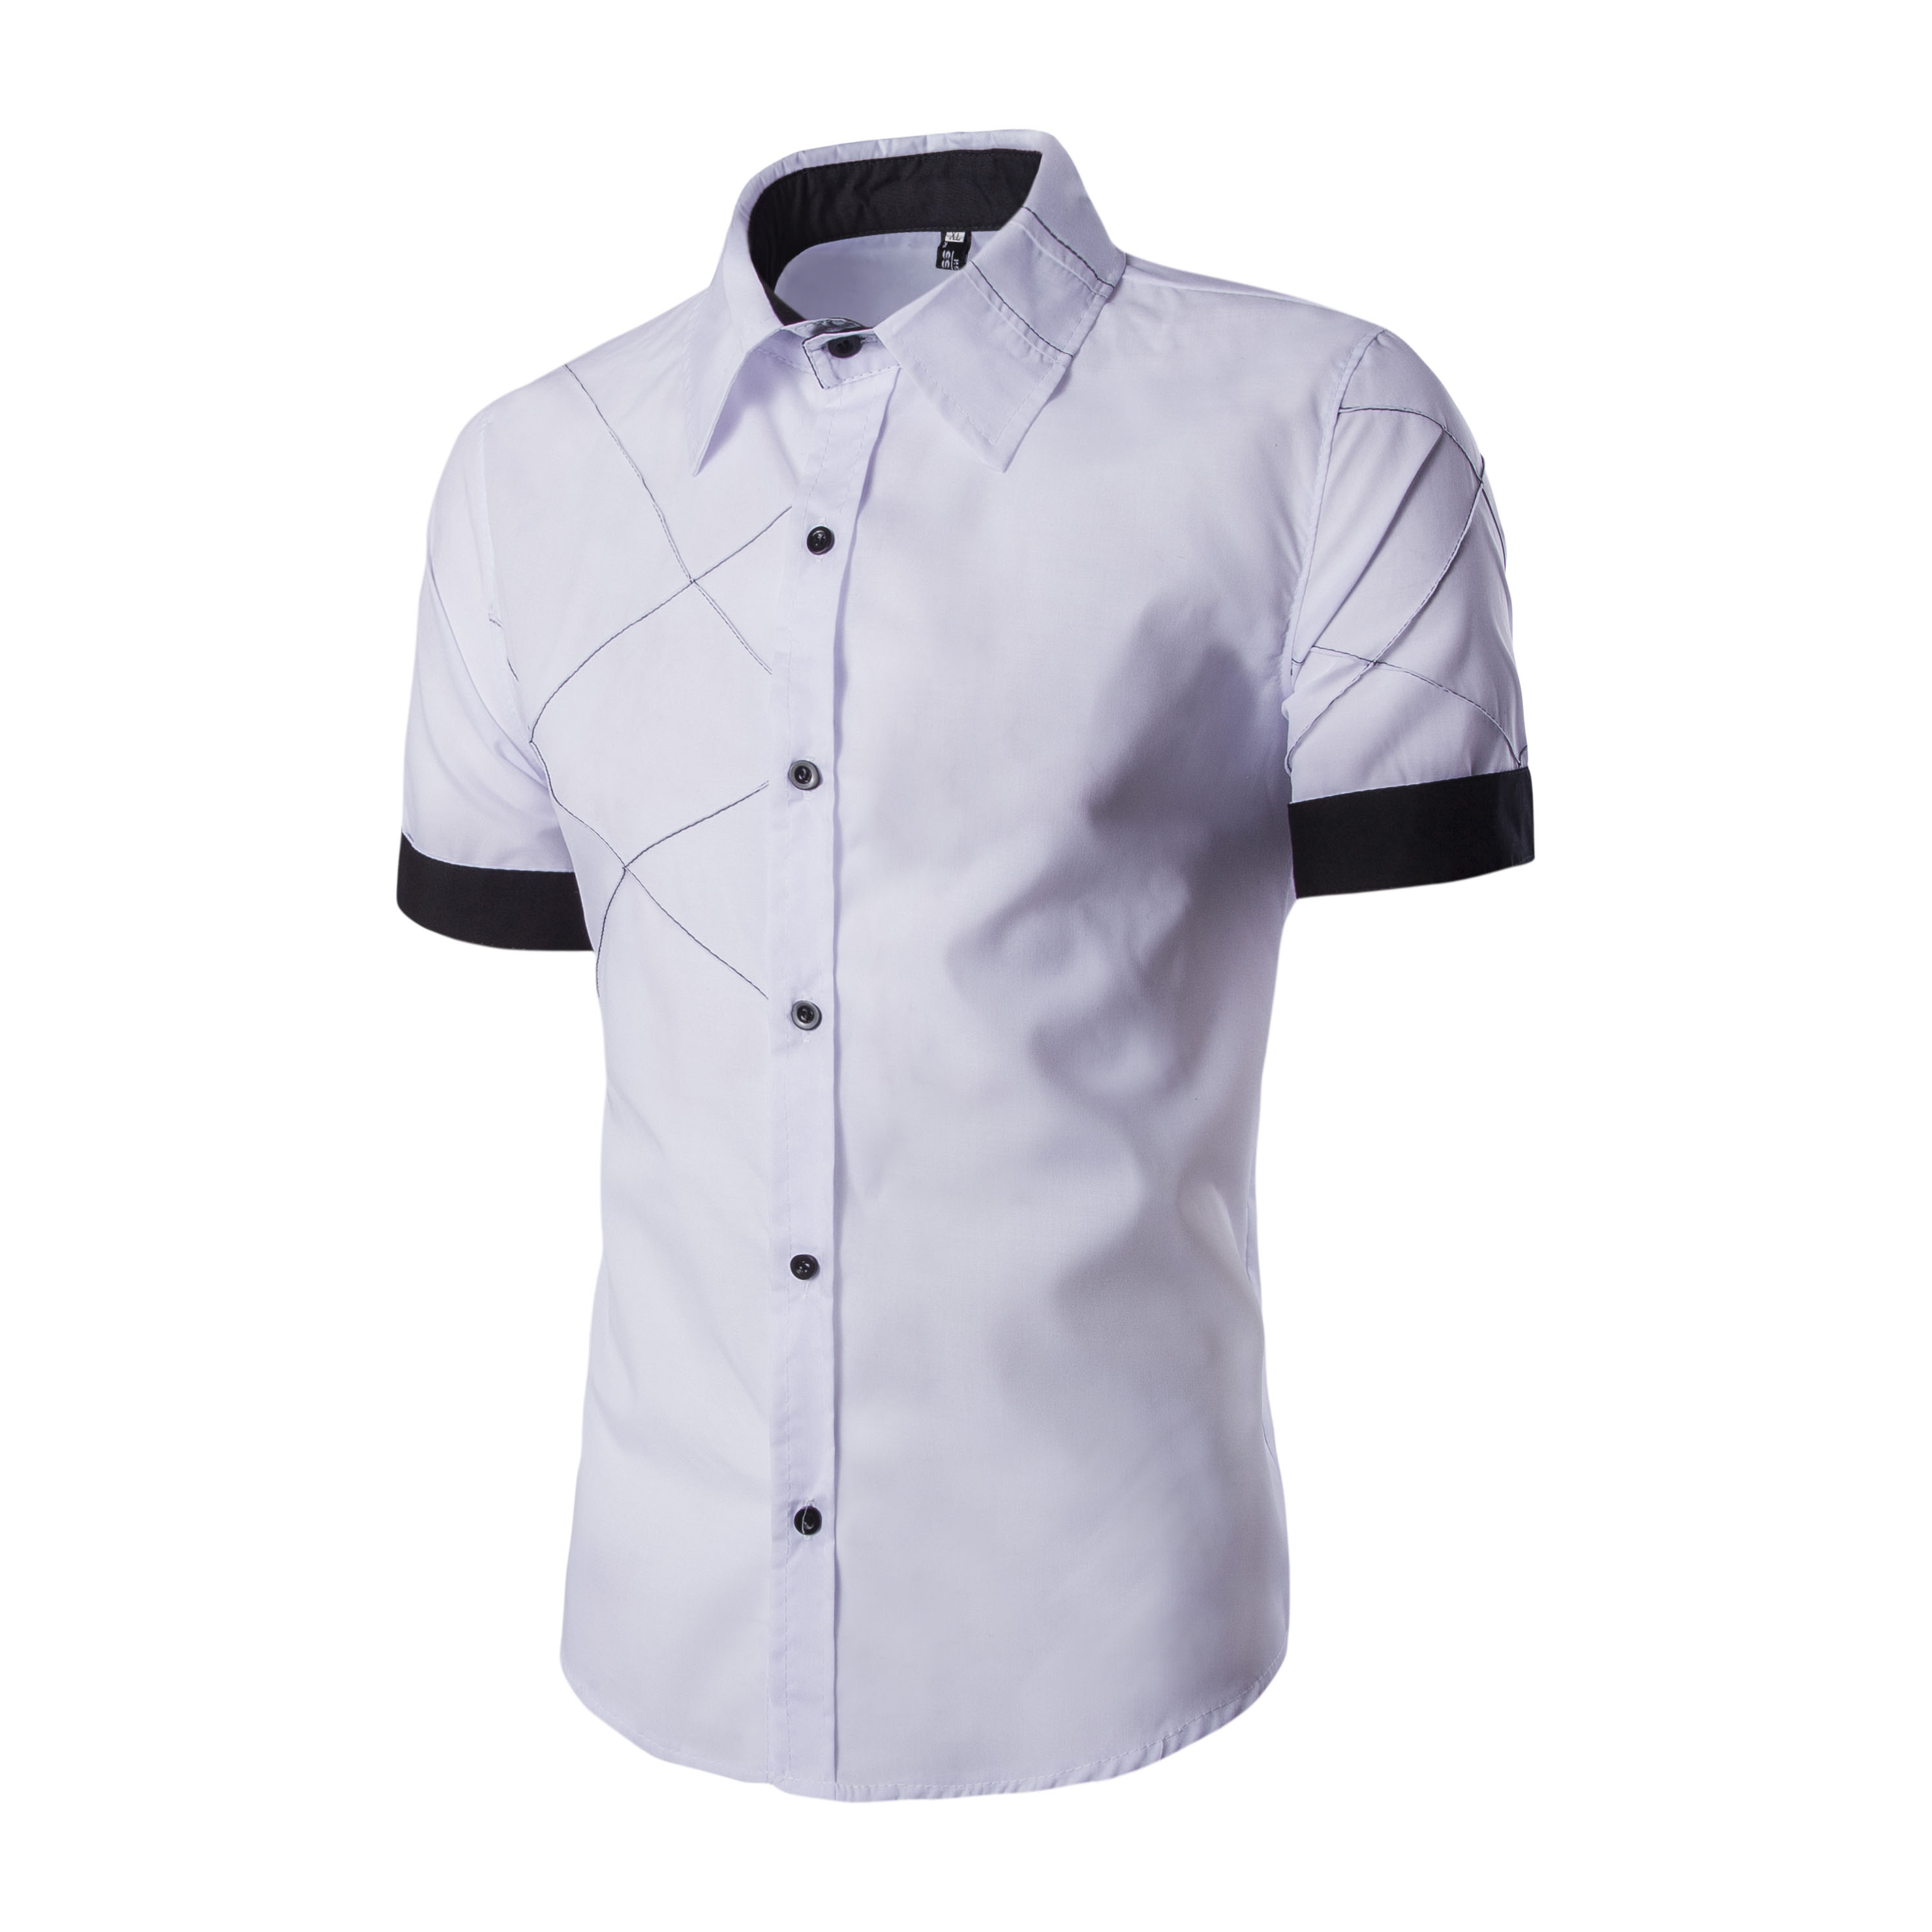 Male's Tops New Summer Men's White Shirt Men's Casual Shirts Turn-Down Collar Short Sleeves Shirt Solid Fashion 2019 D40